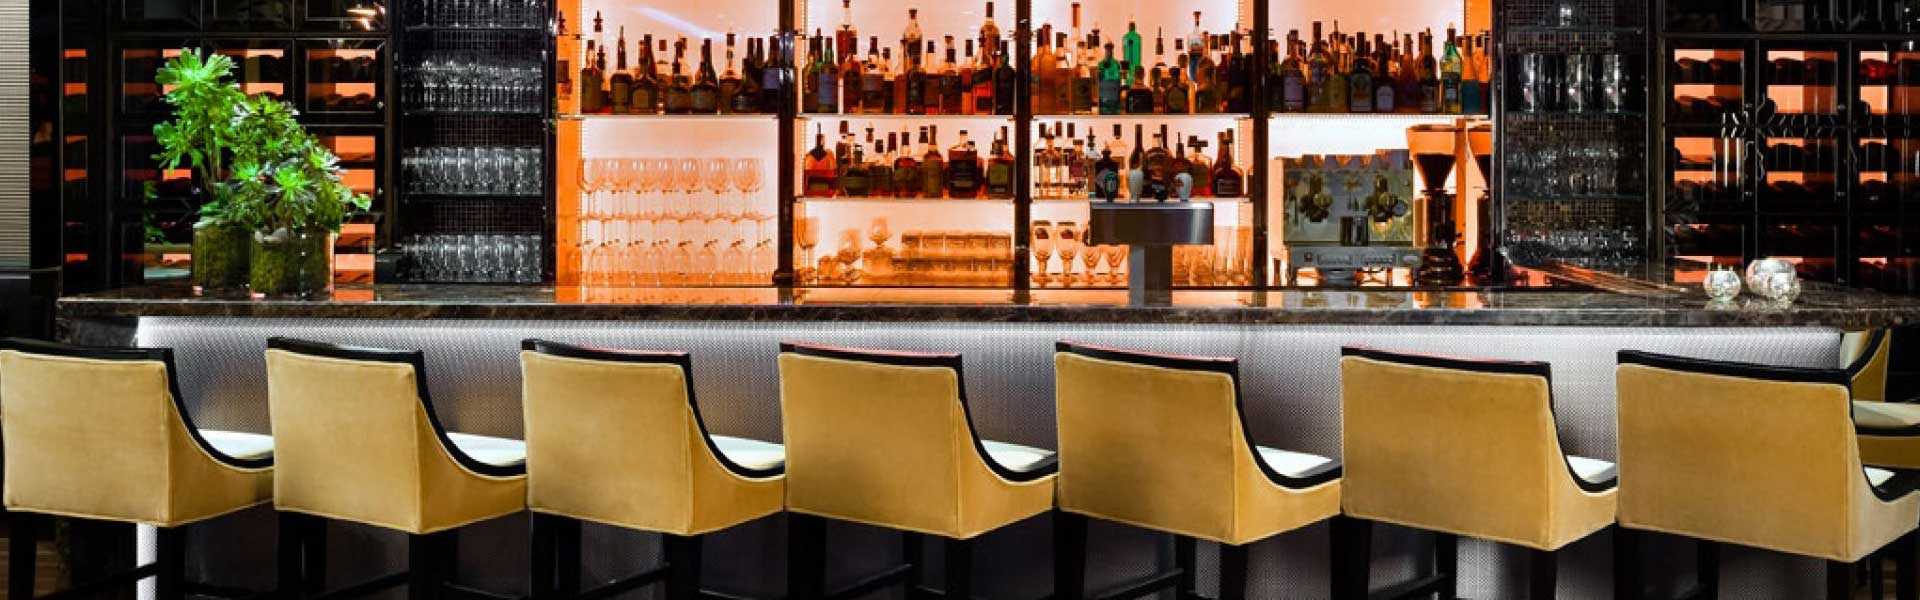 our-hotels-restaurants--bars-sldier1-1920x600